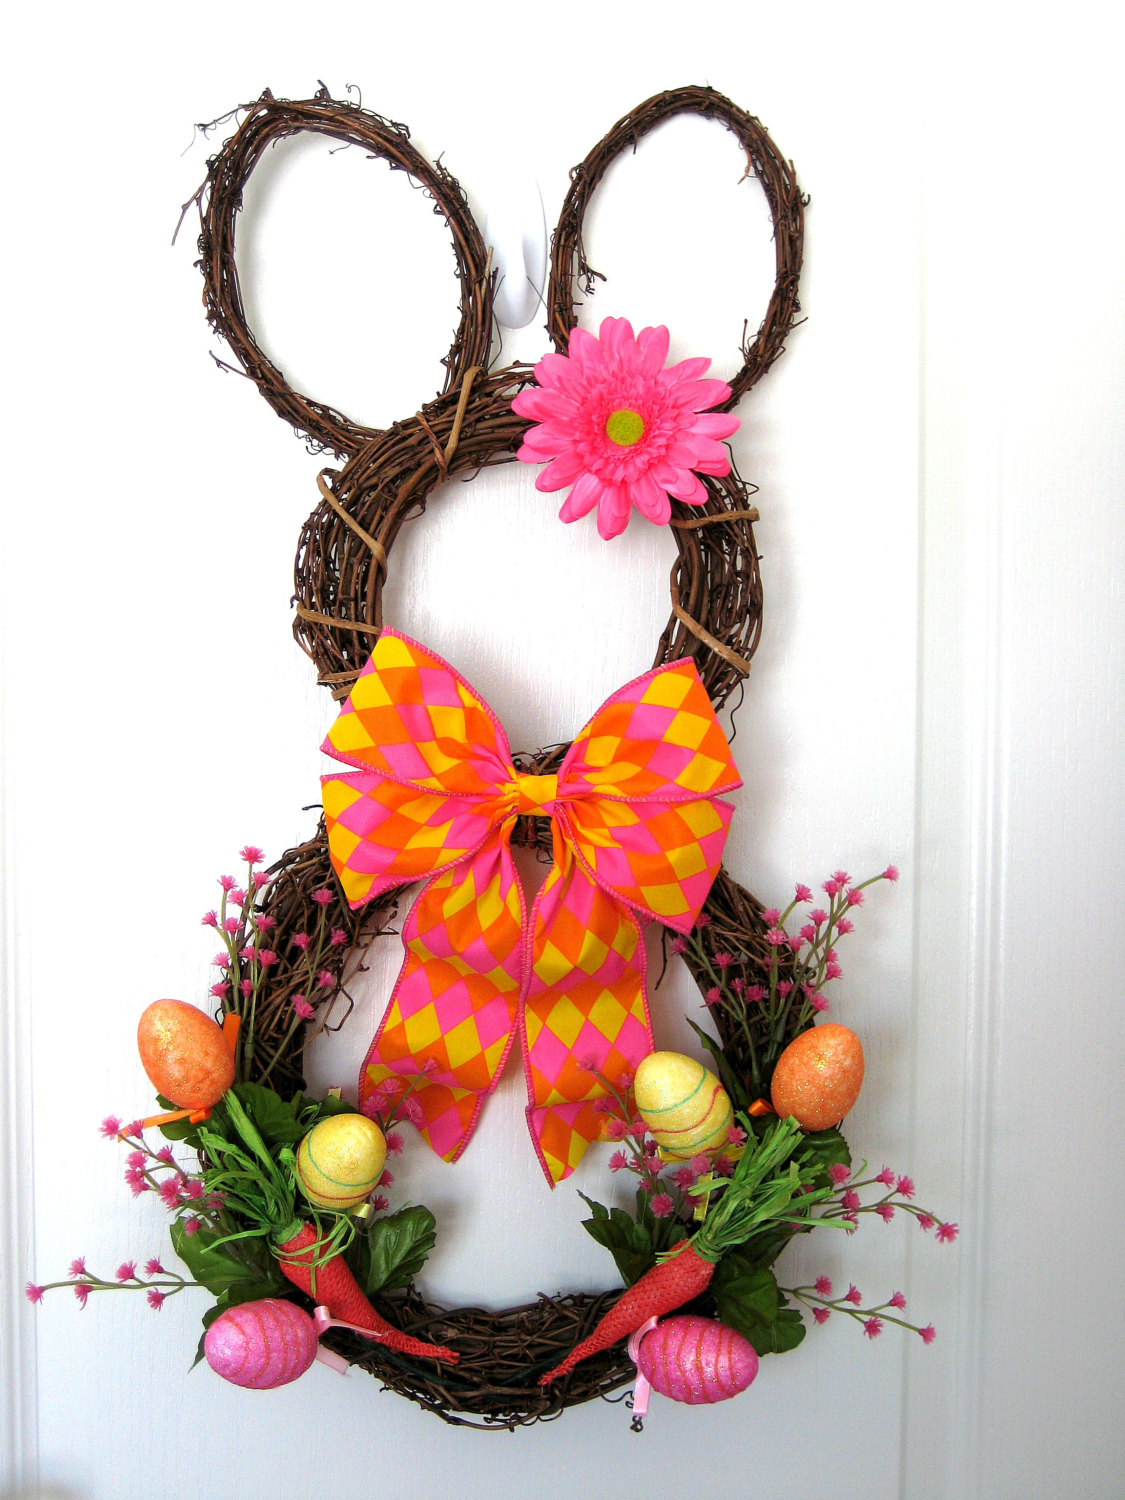 18 Cheerful Handmade Easter Wreath Designs To Get Your ...